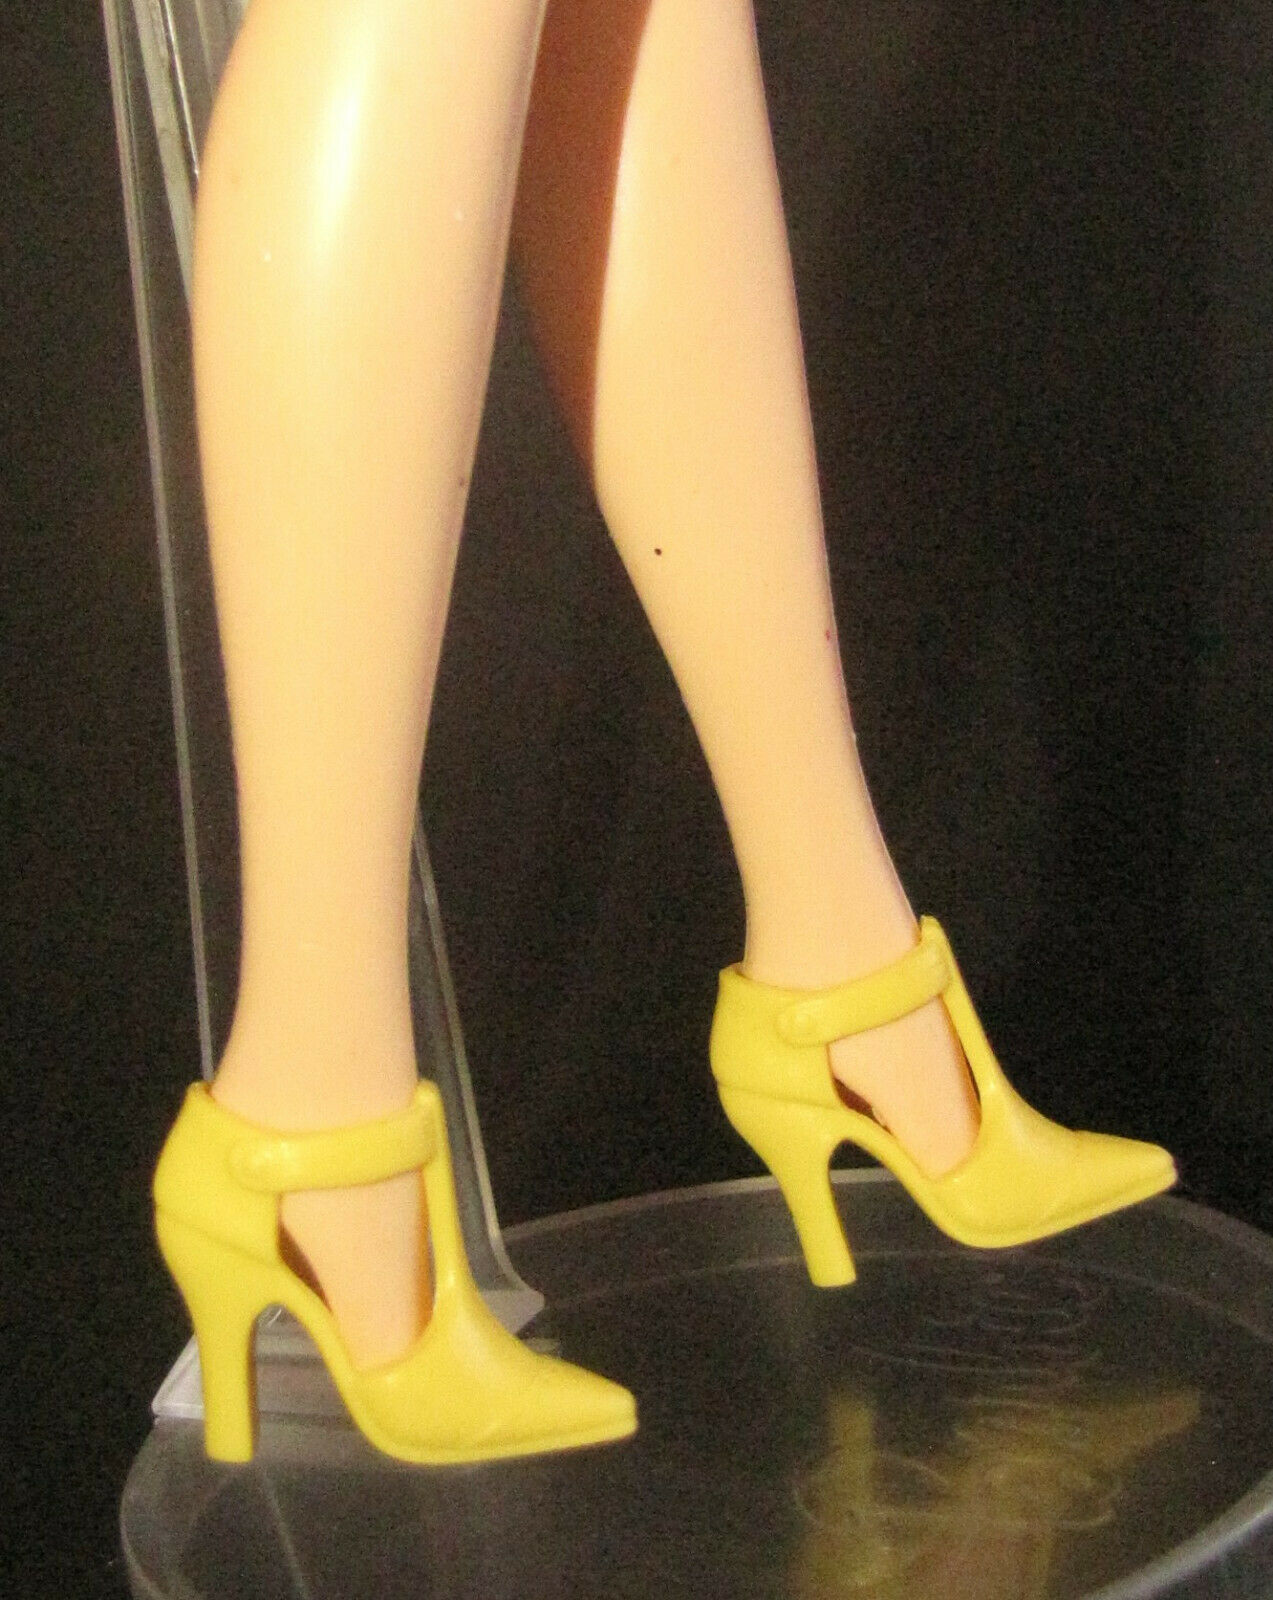 SHOES MATTEL BARBIE DOLL YELLOW MARY JANE T-STRAP HIGH HEELS SANDALS ACCESSORY - $3.95